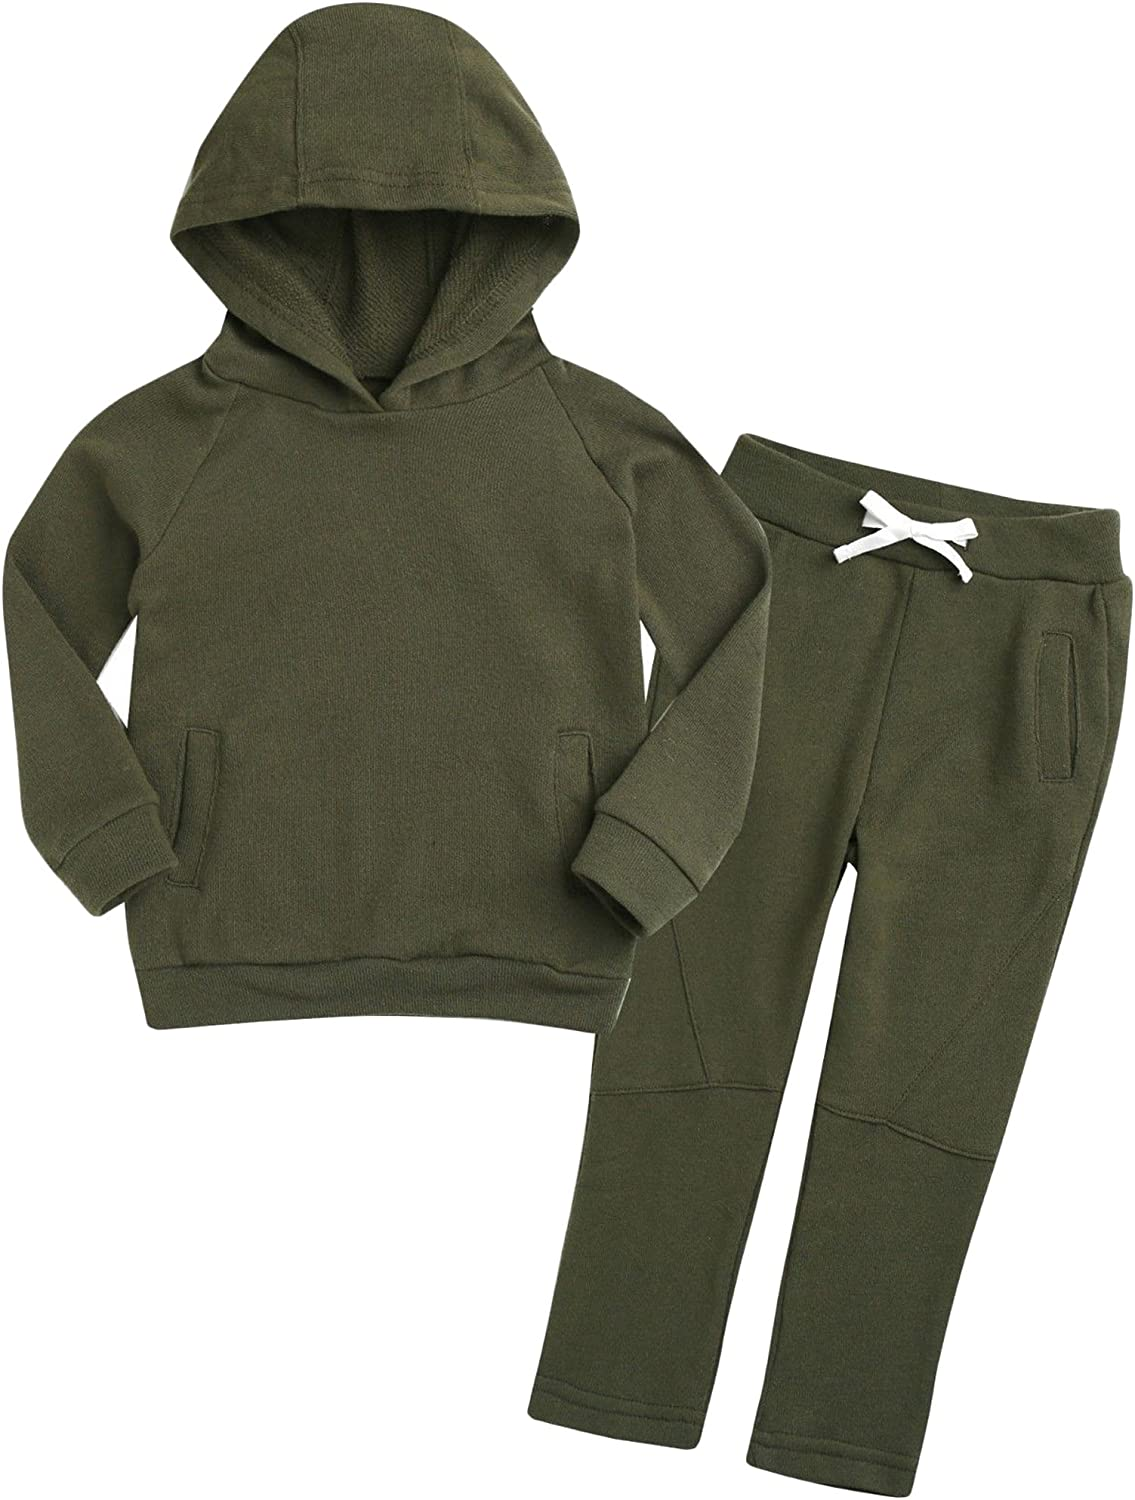 OLLIE ARNES Toddler Unisex Pullover Hoodie and Sweatpant Sets(12M to 7T)